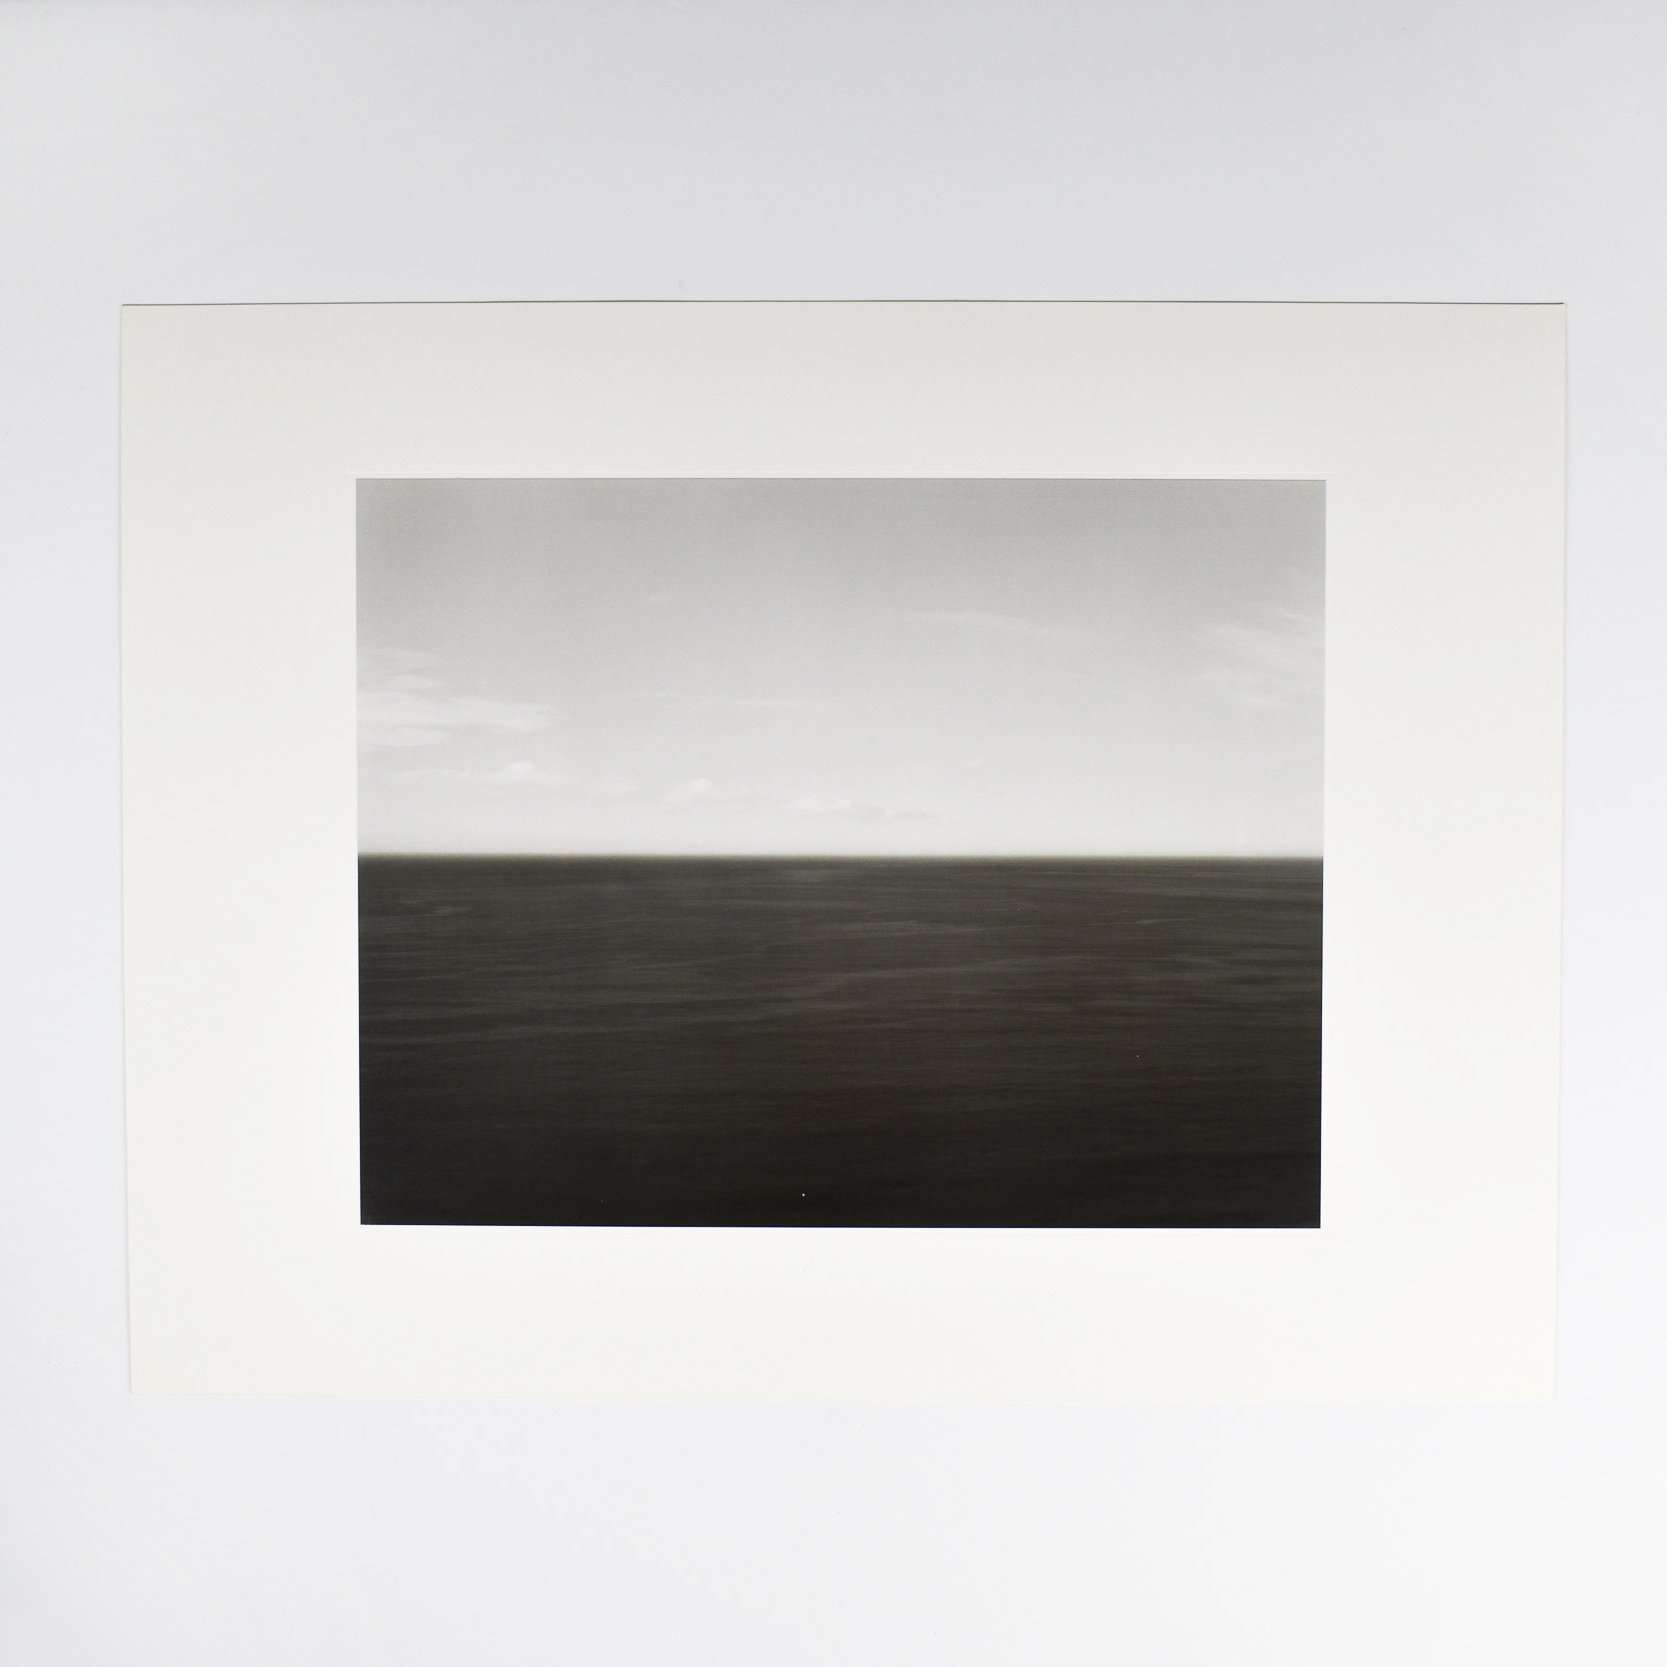 Hiroshi Sugimoto, Time Exposed: #329 South Pacific Ocean Maraenui 1990, 1991 | Lougher Contemporary